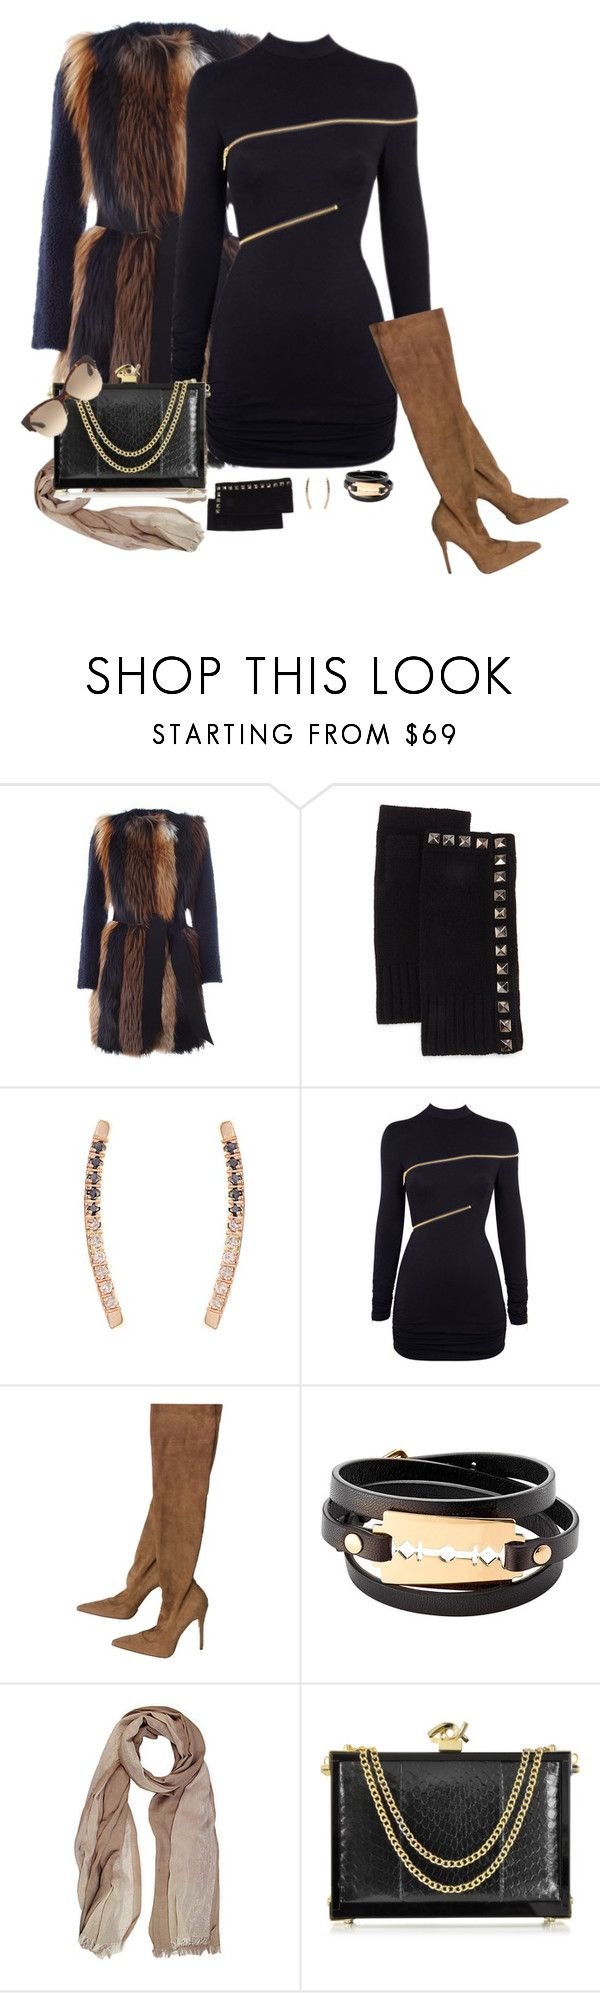 """""""Dance All Night"""" by shadedlady ❤ liked on Polyvore featuring BLANCHA, Neiman Marcus, Loren Stewart, Agent Provocateur, Manolo Blahnik, McQ by Alexander McQueen, Saachi, Dsquared2 and Prada"""